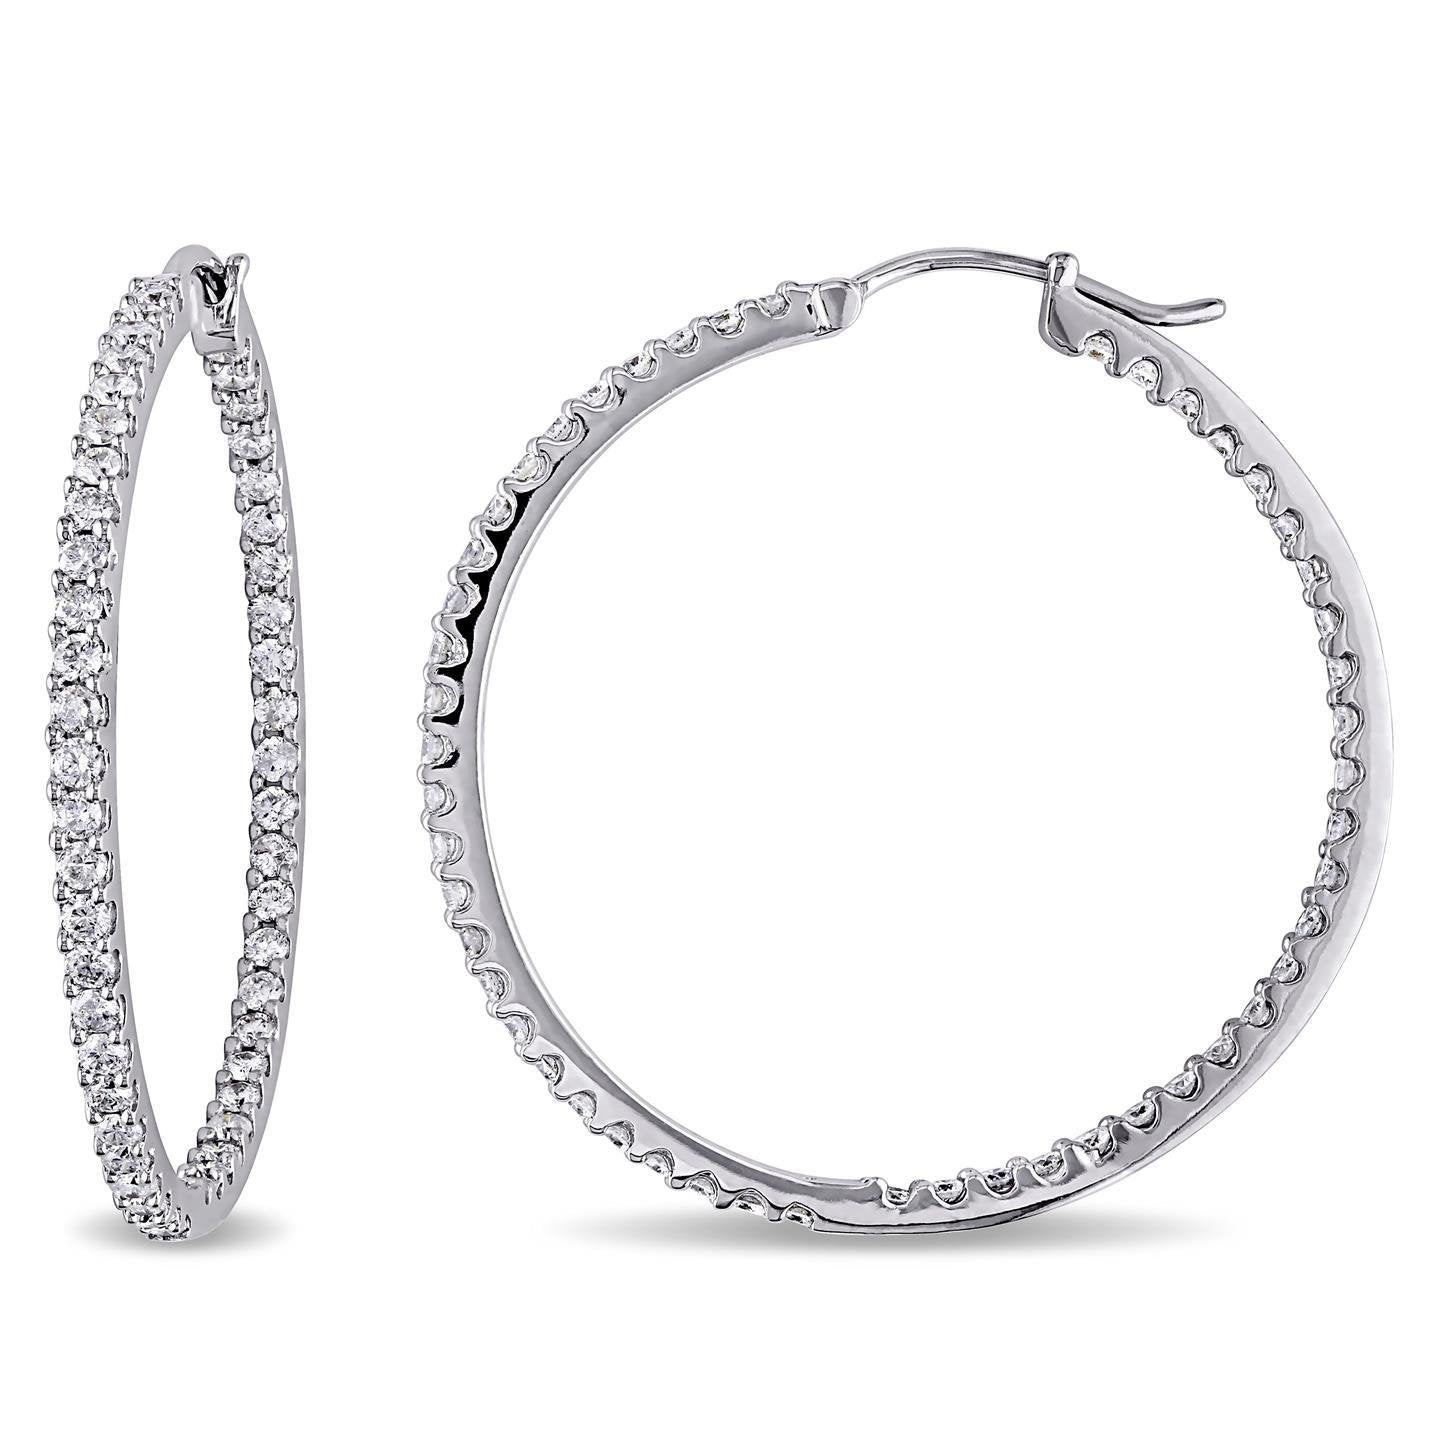 3.90 Ct. Brilliant Cut Sparkling Diamonds Hoop Earrings Gold White Hoop Earrings